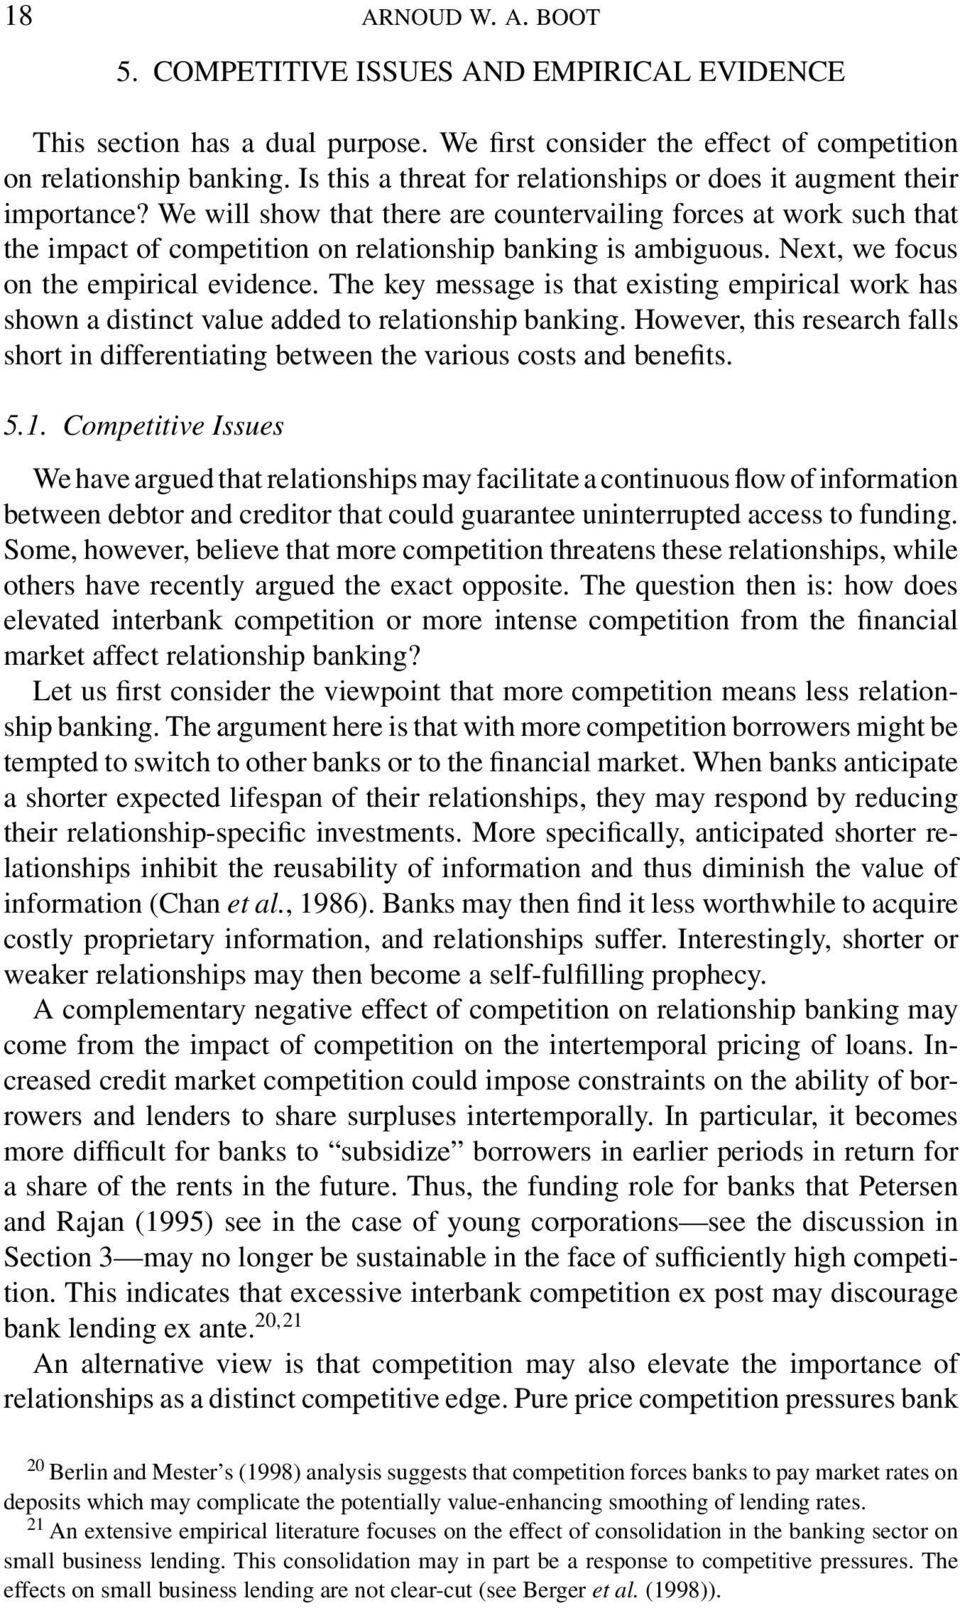 We will show that there are countervailing forces at work such that the impact of competition on relationship banking is ambiguous. Next, we focus on the empirical evidence.